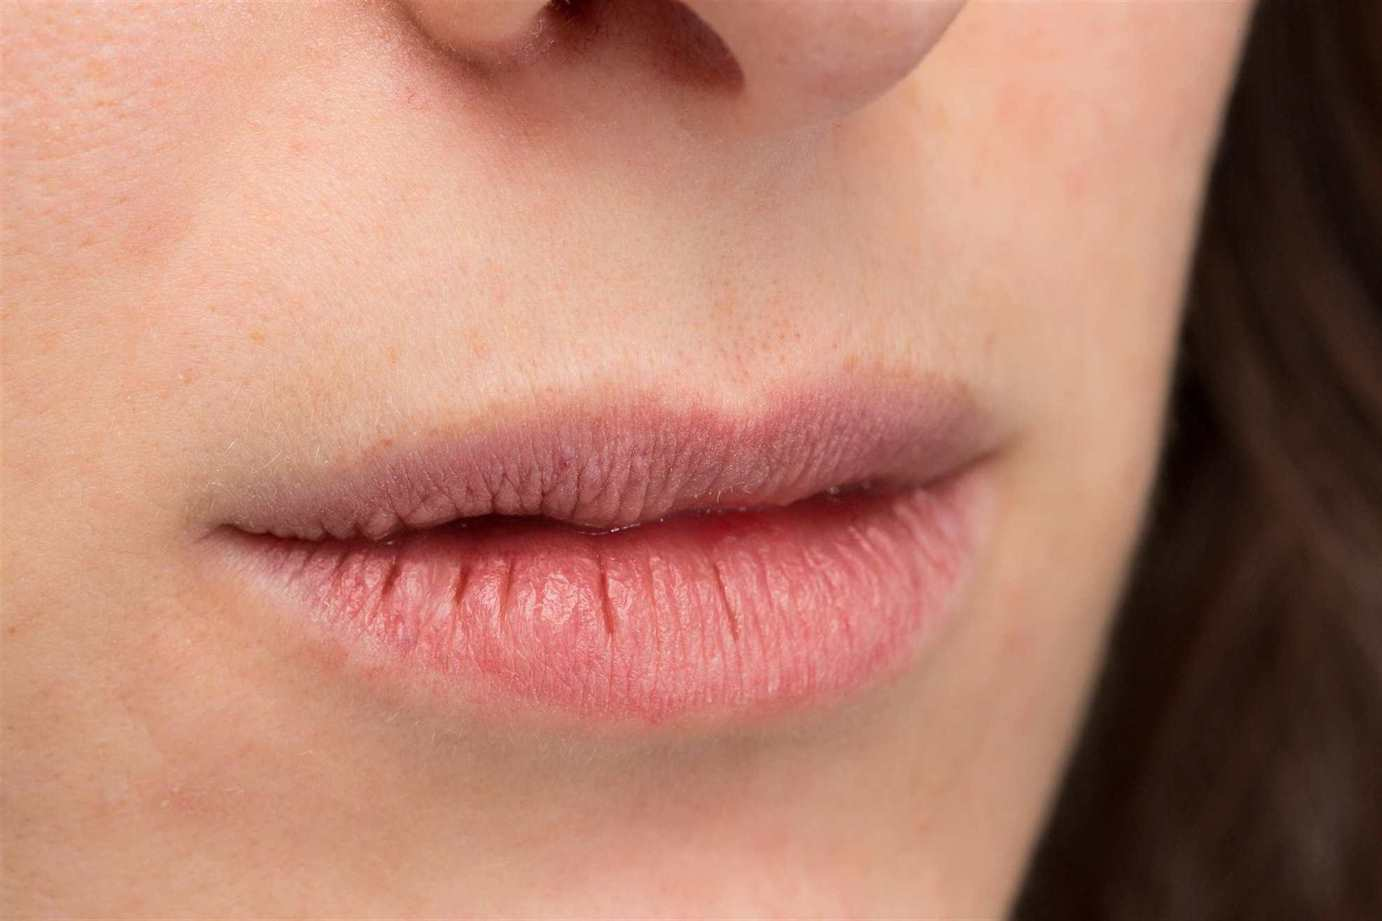 What Could Be Causing Your Dry Mouth?